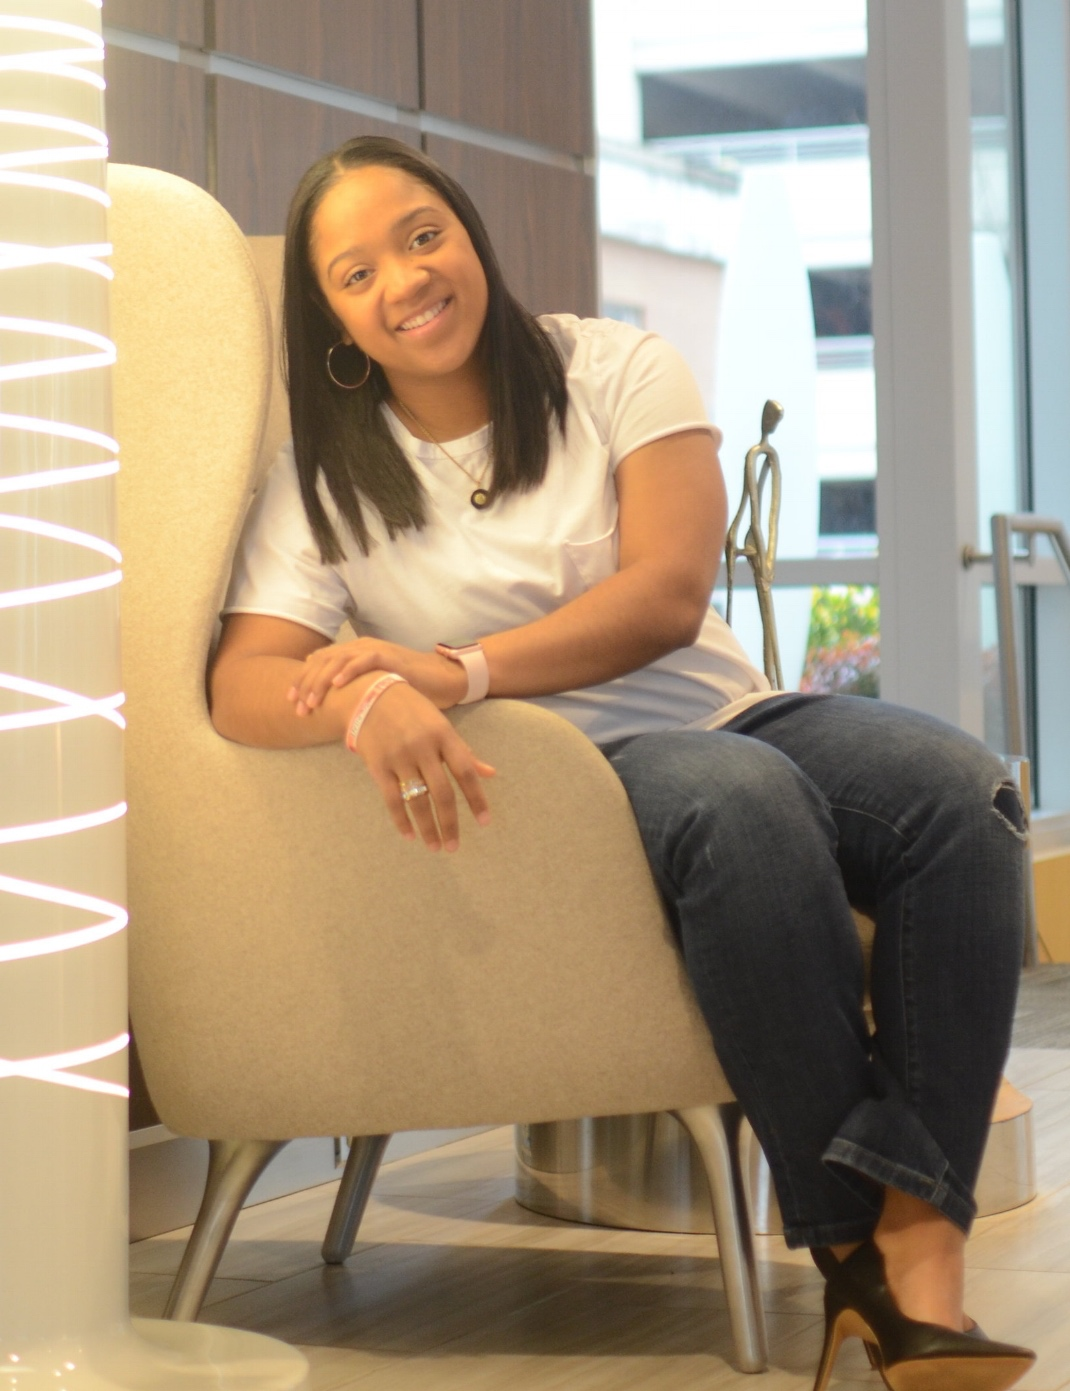 Ja'Naye Ruffin - Founder/President - Ja'Naye Ruffin is a native of Washington, D.C. She received her BS in Sport Management and Communications at Elizabeth City State University. Her goal is to help impact the lives of our young men by eliminating saggin' pants and introducing them to their very first custom tailored suit.